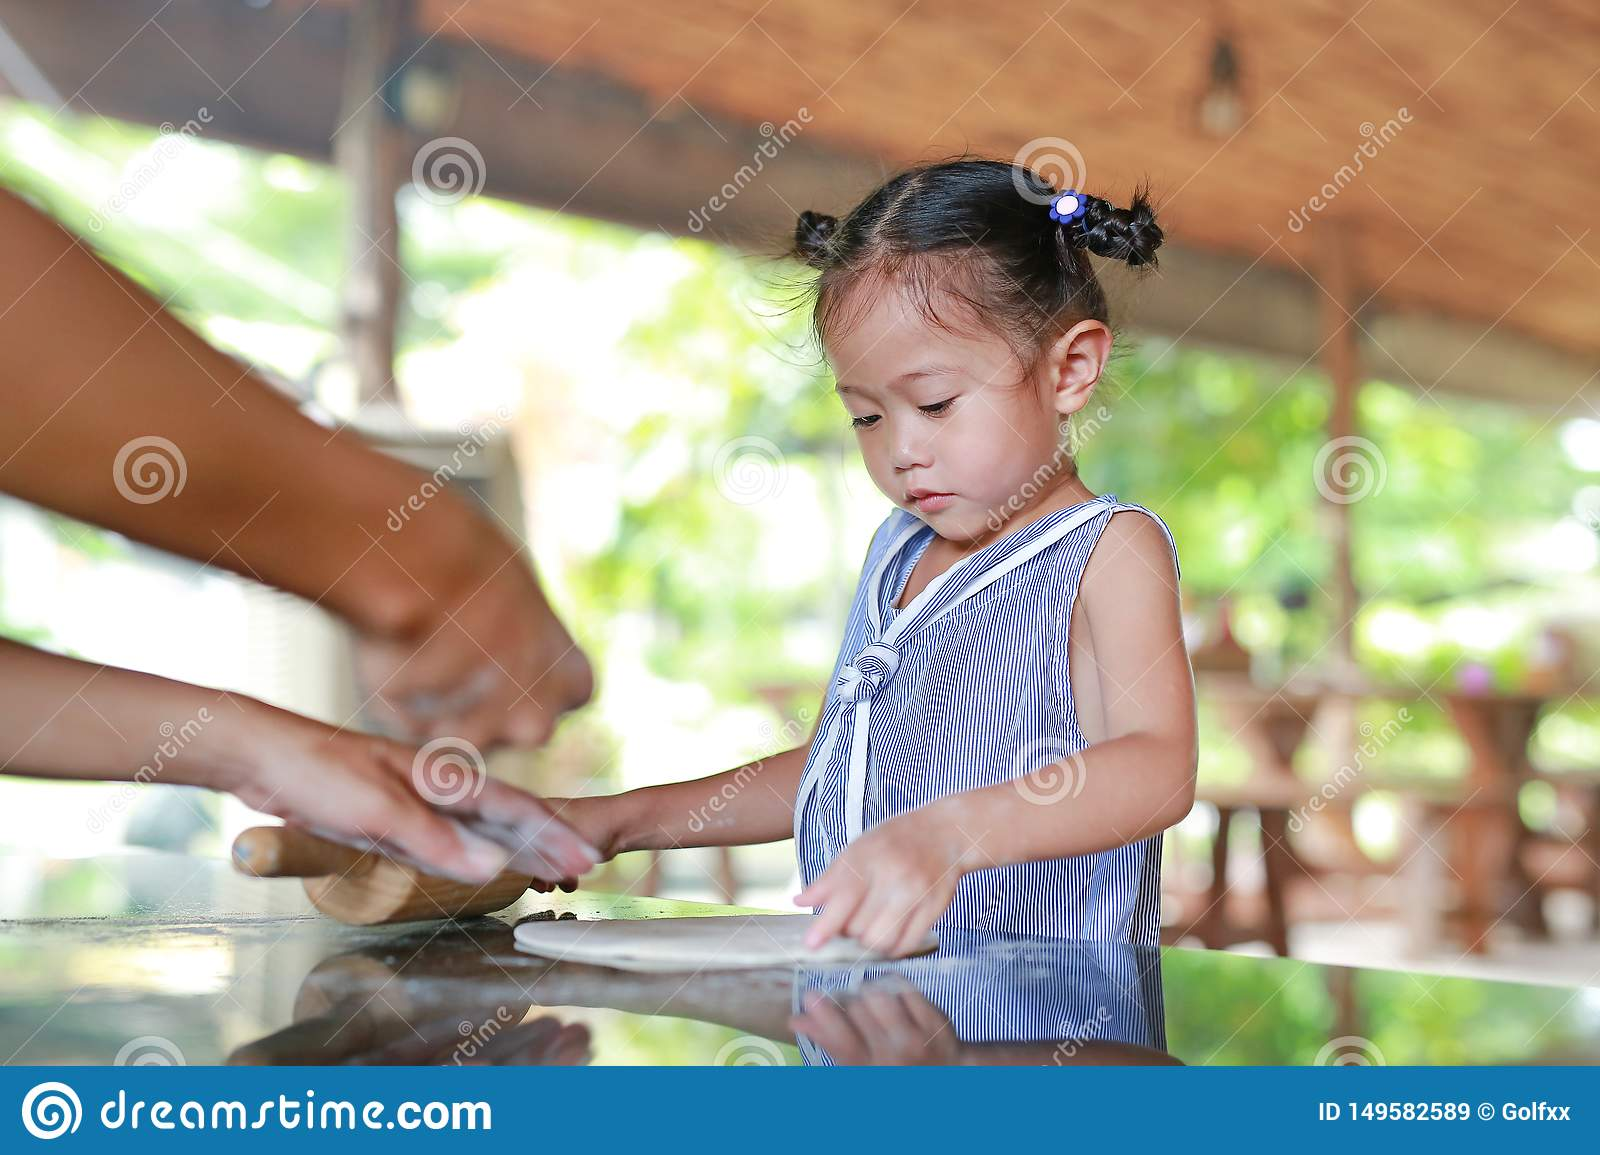 Mother teaching little girl for using Wooden rolling pin on Dough for pizza